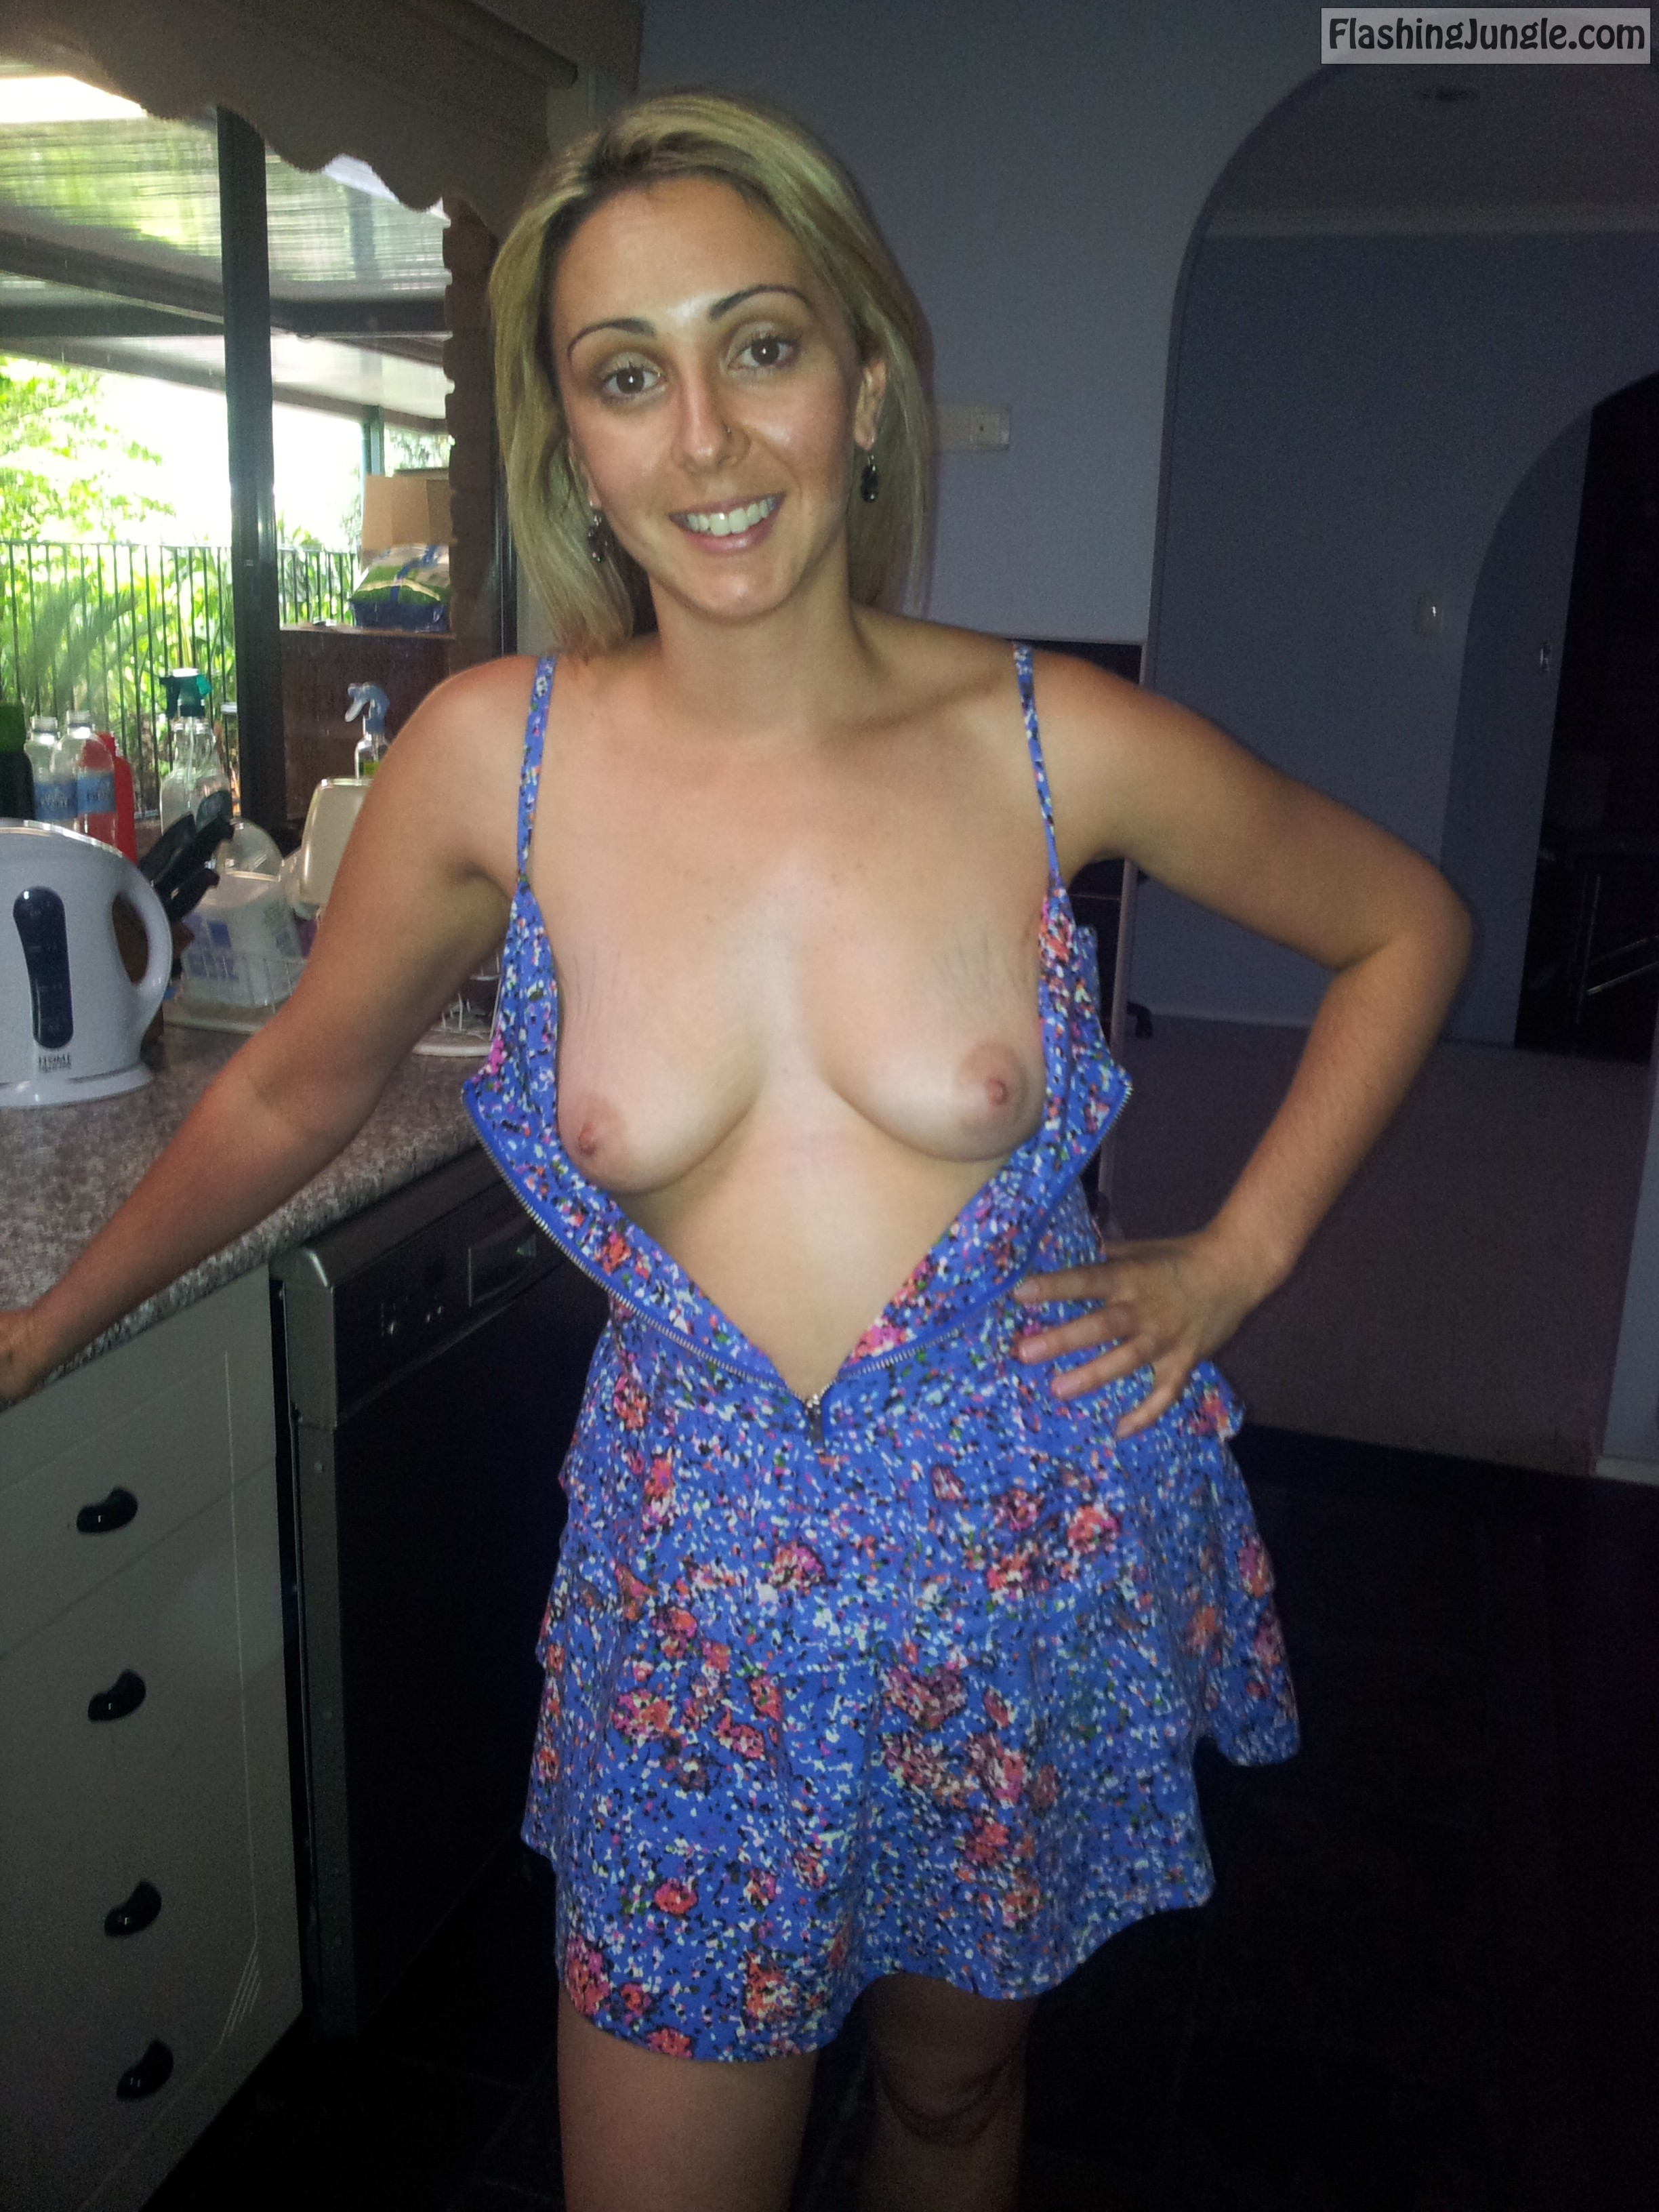 Aussie Melanie shows her tits real nudity